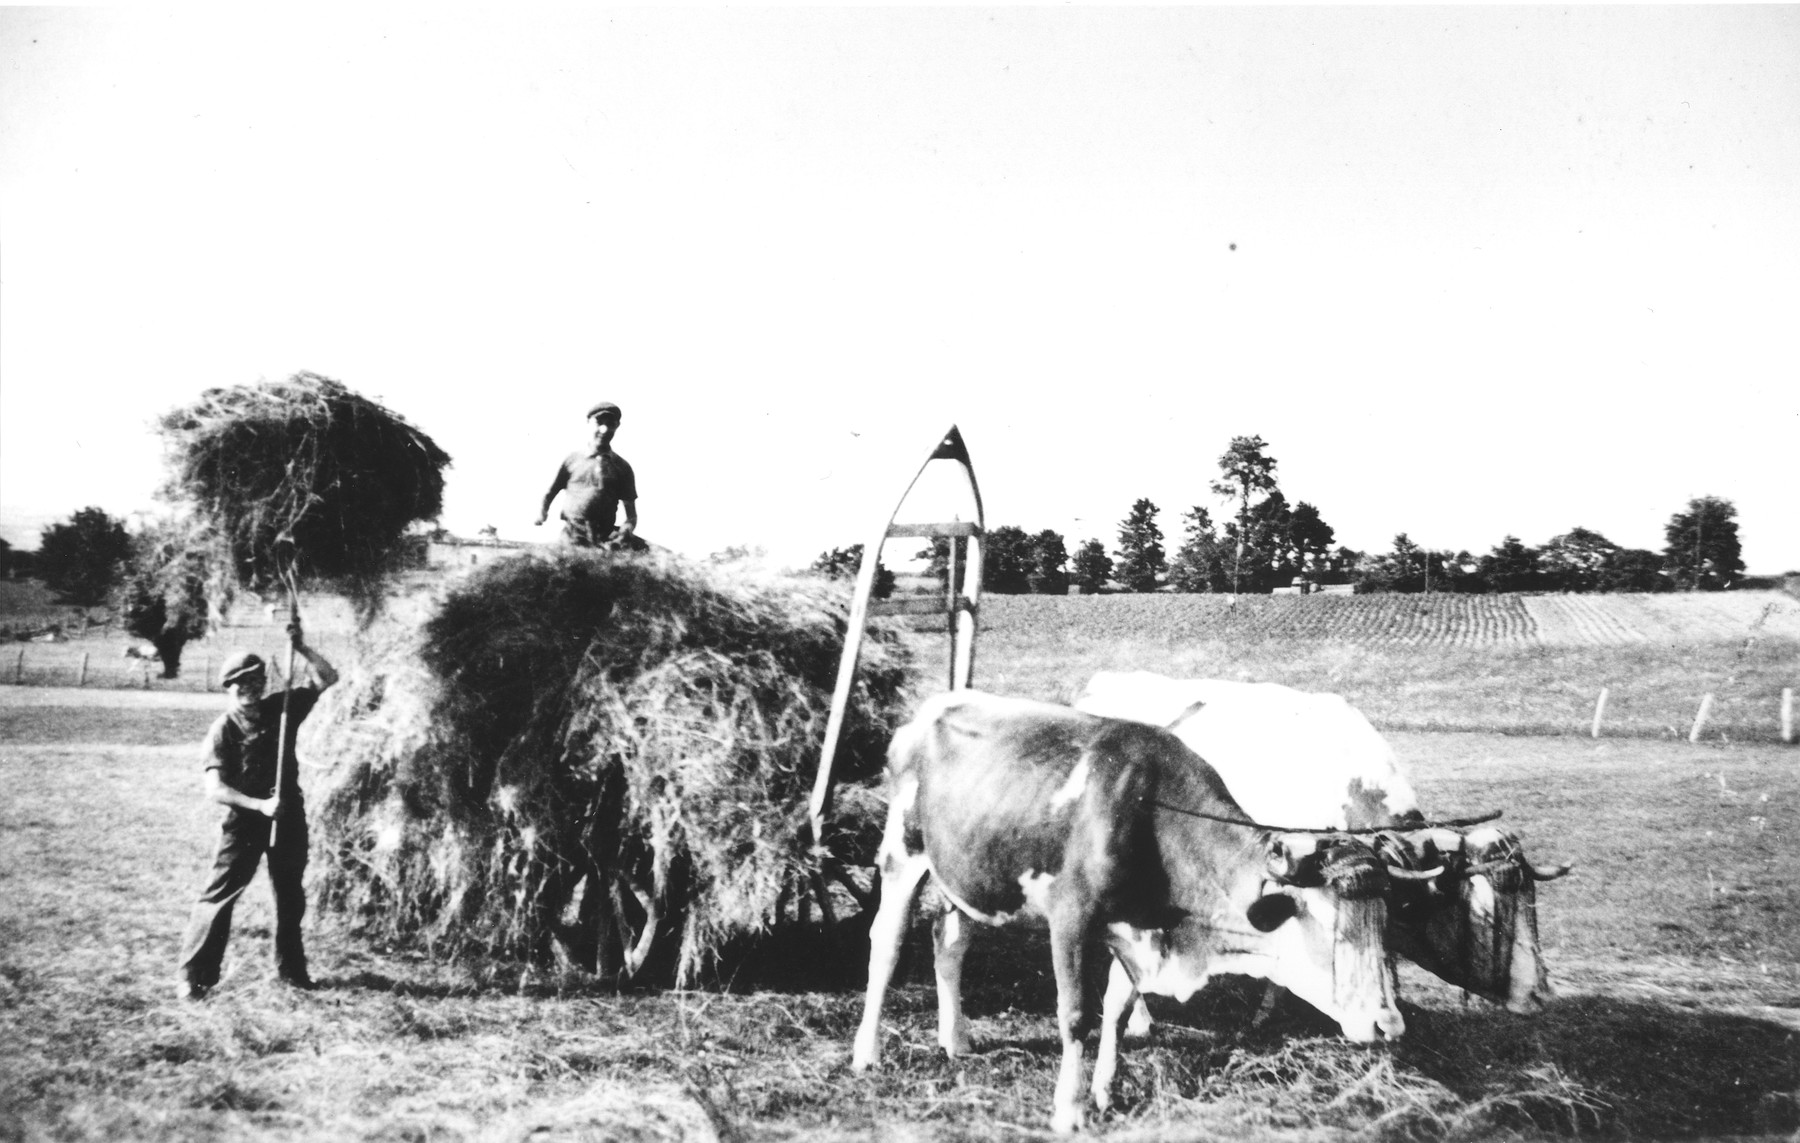 A hidden Jewish youth works on a hay wagon at a farm near Lyon, France.    Pictured is the donor's brother, Herbert Karliner.